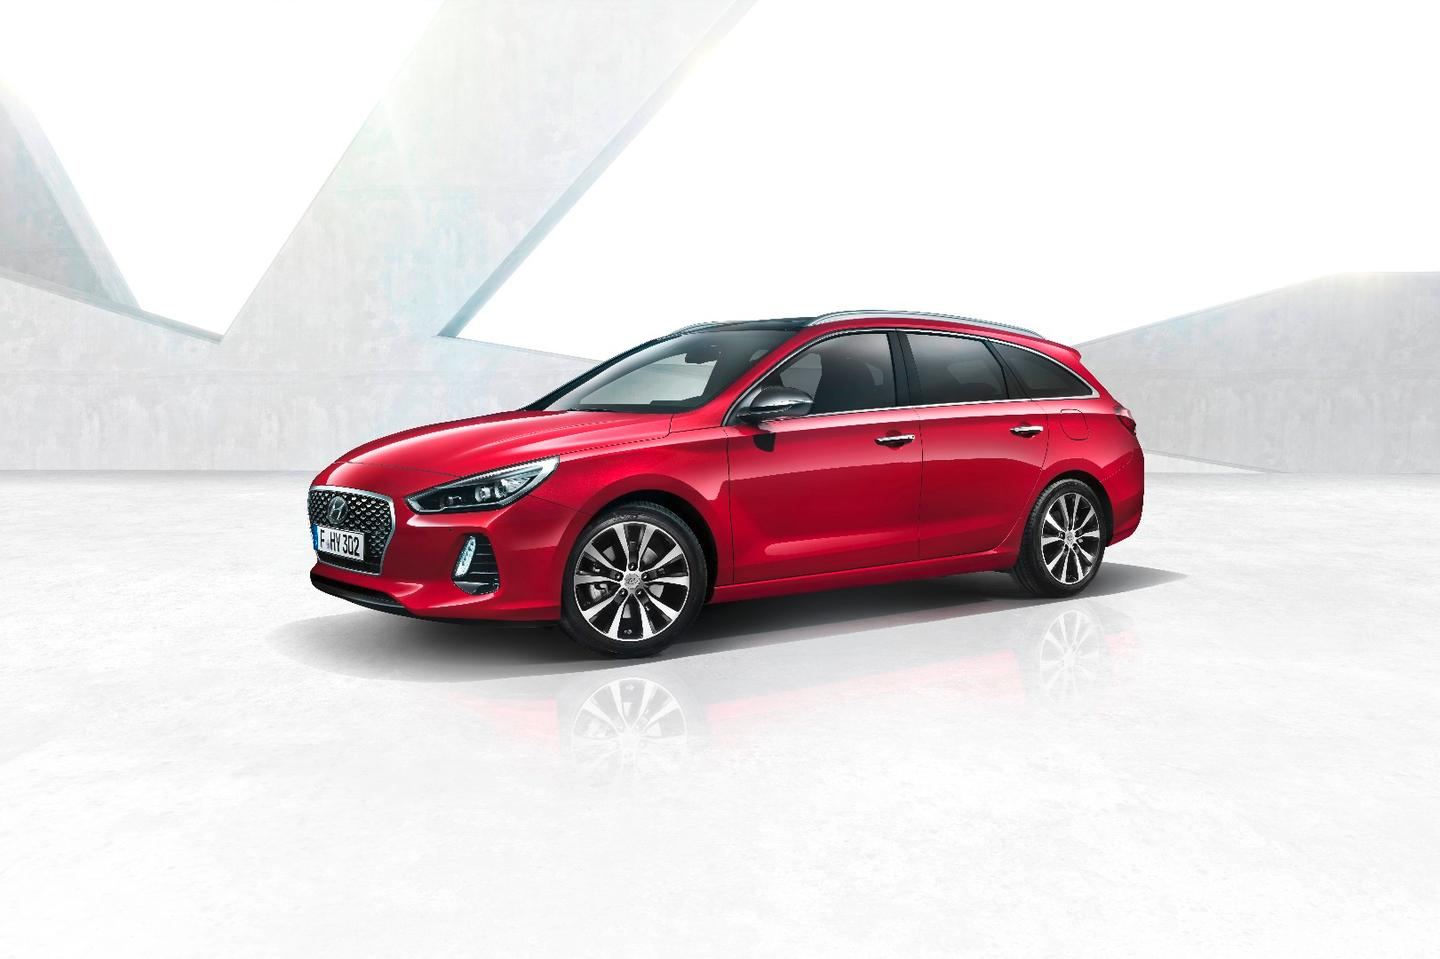 The i30 Tourer is longer and taller than the hatchback it's based on